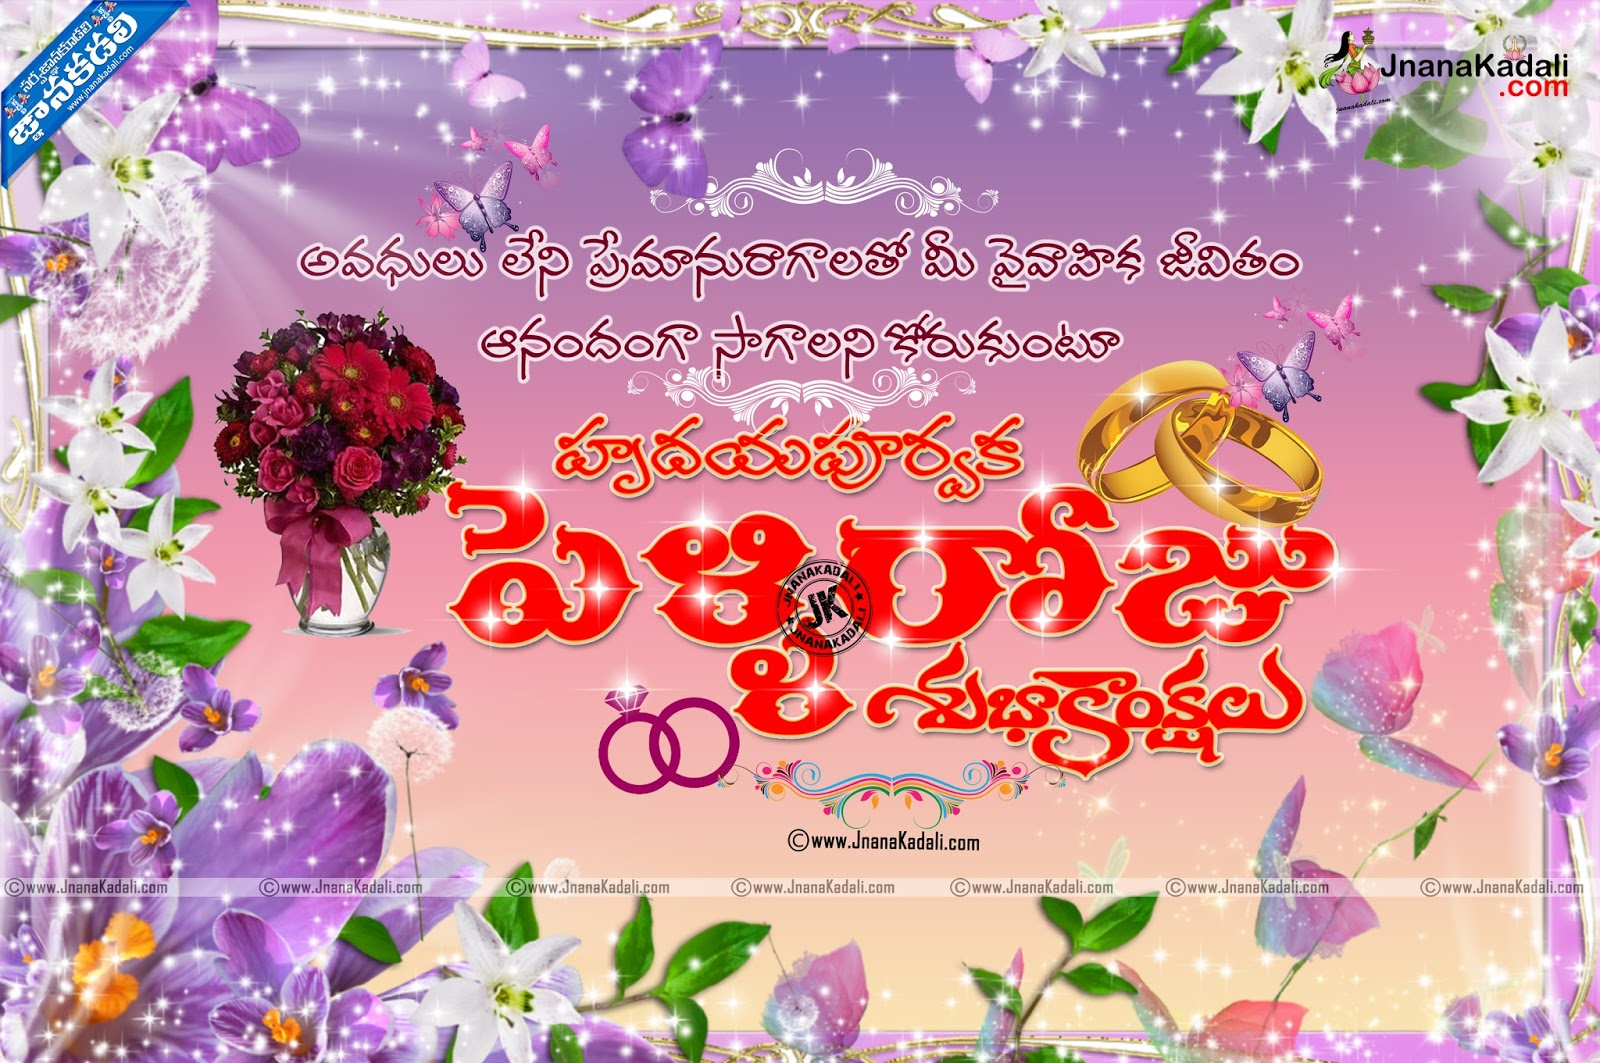 Telugu Marriage Day Wishes Pelliroju Subhakankshalu Jnana Kadali